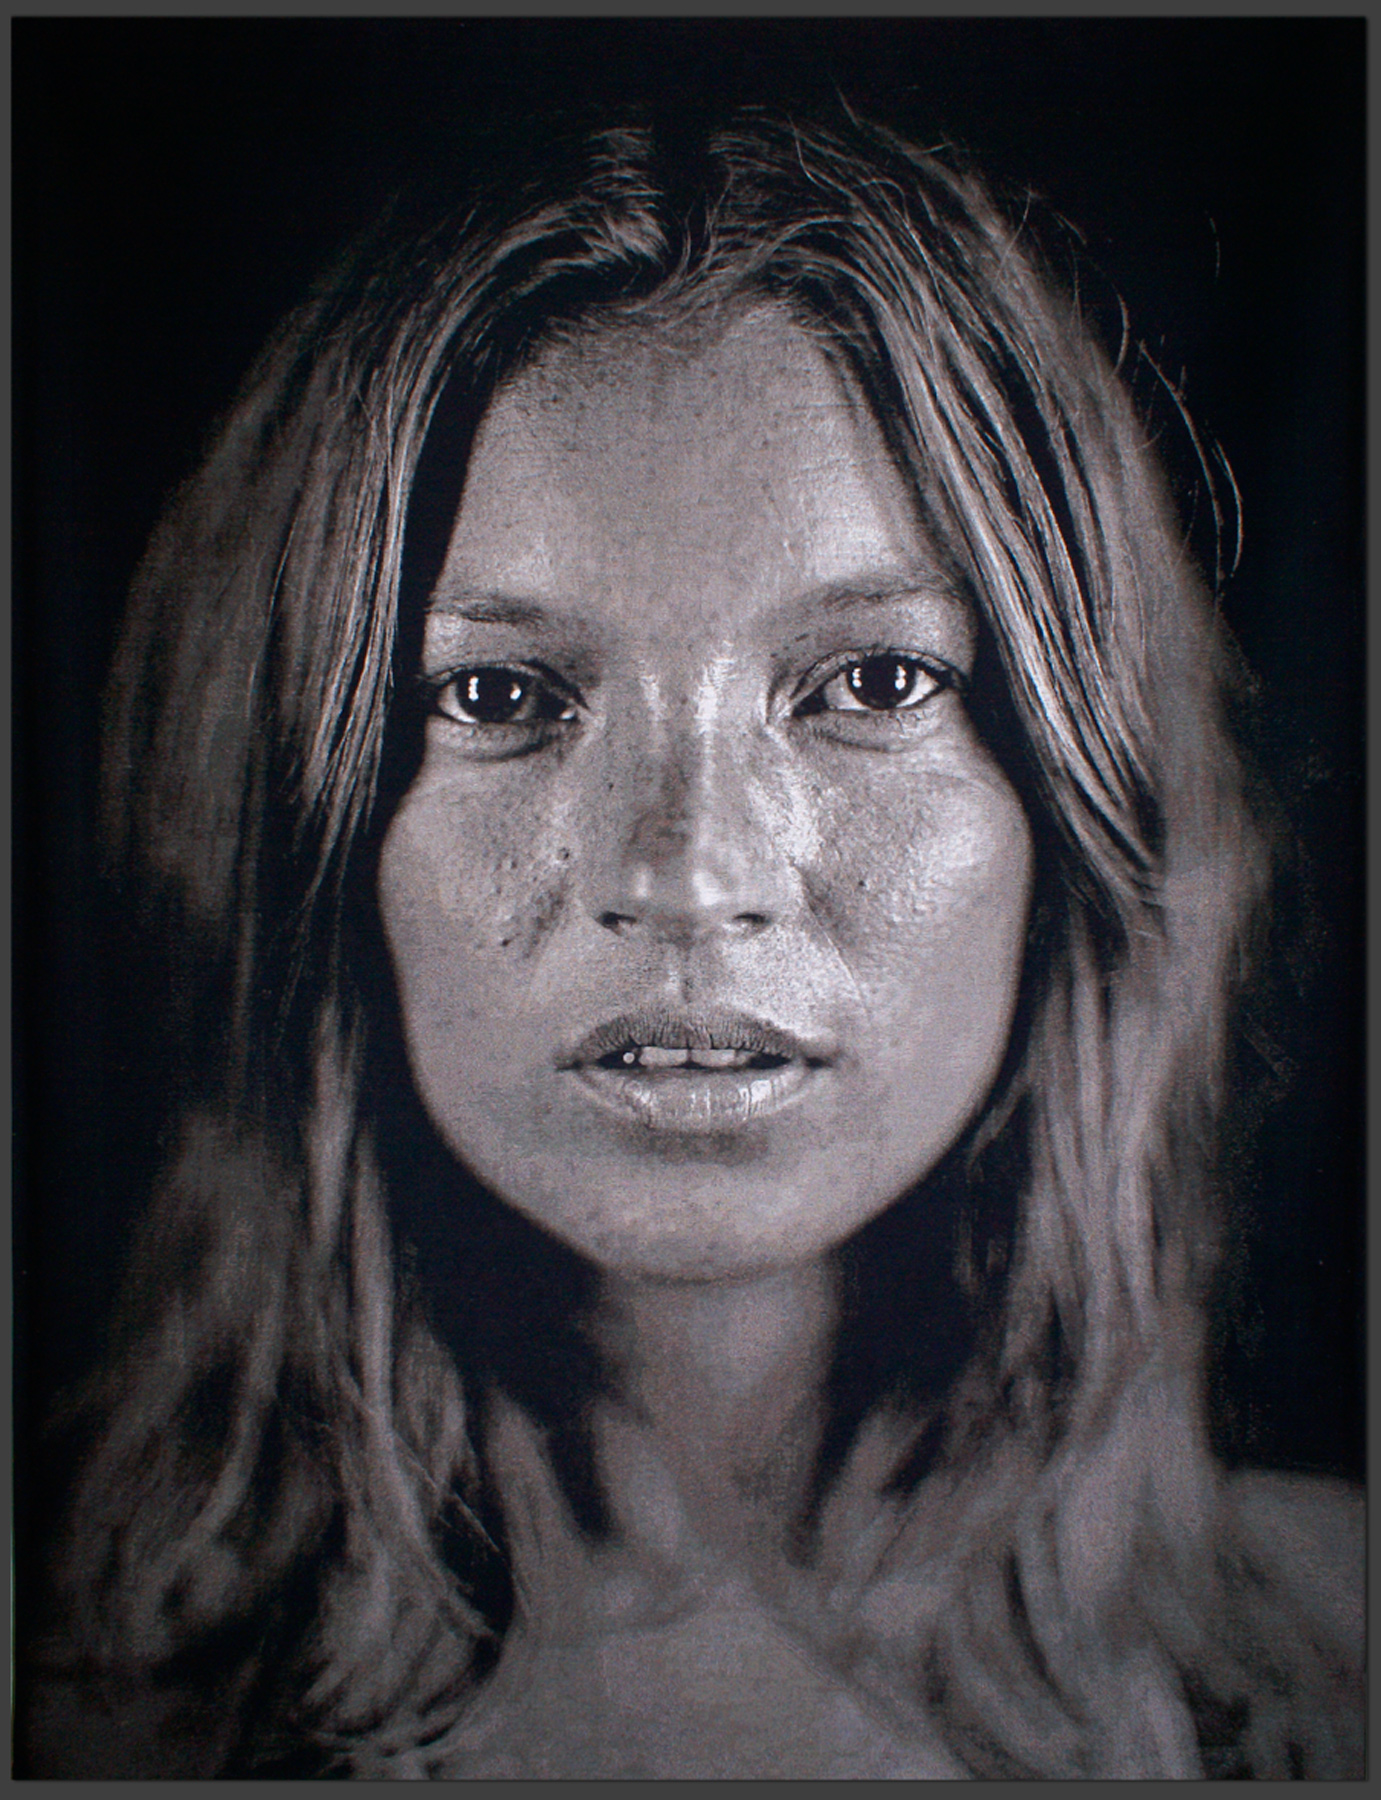 Kate, 2007 by Chuck Close